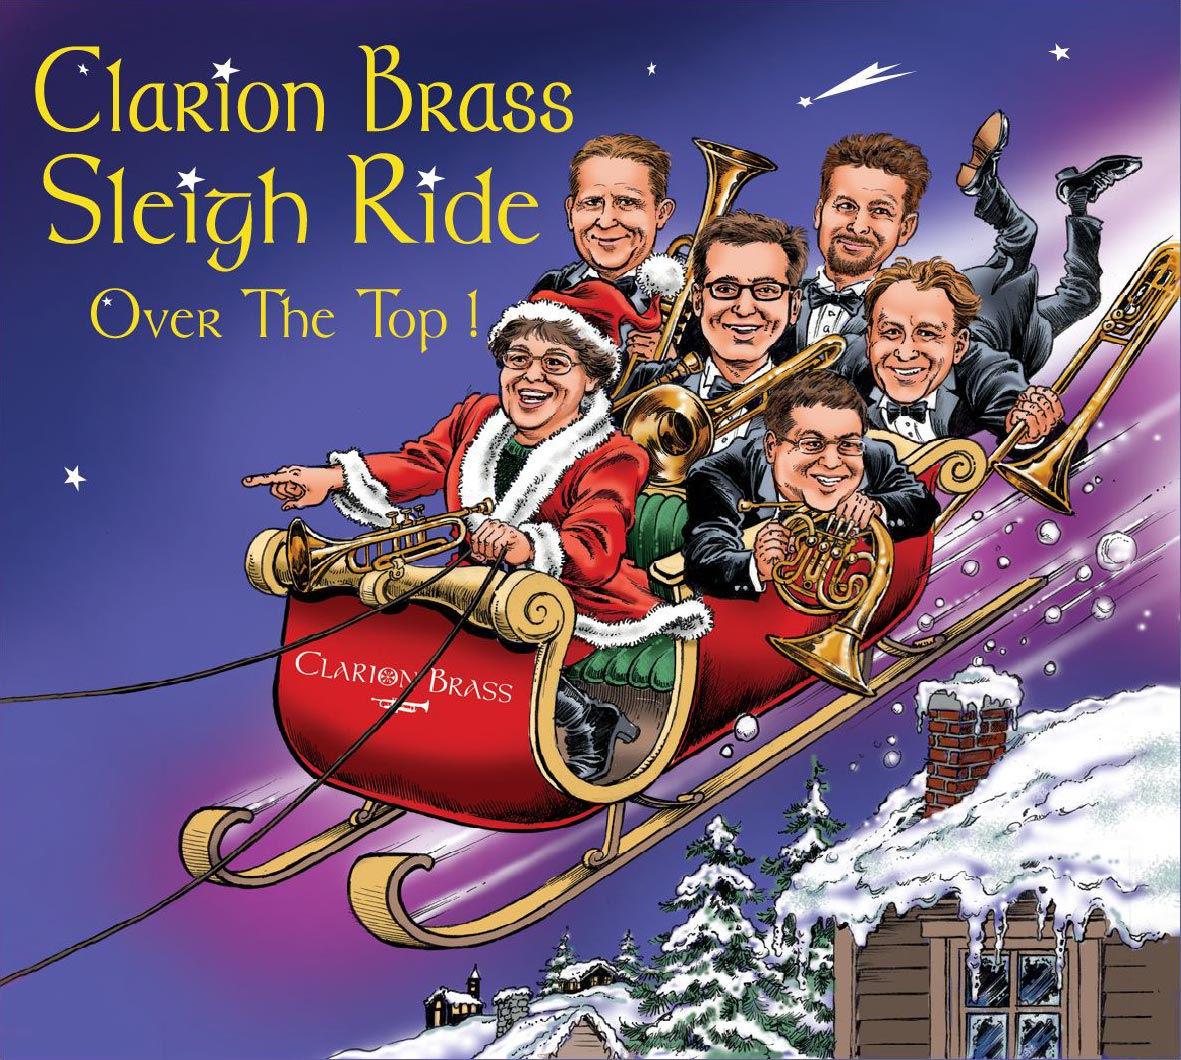 Clarion Brass Christmas 2021 Clarion Brass Events